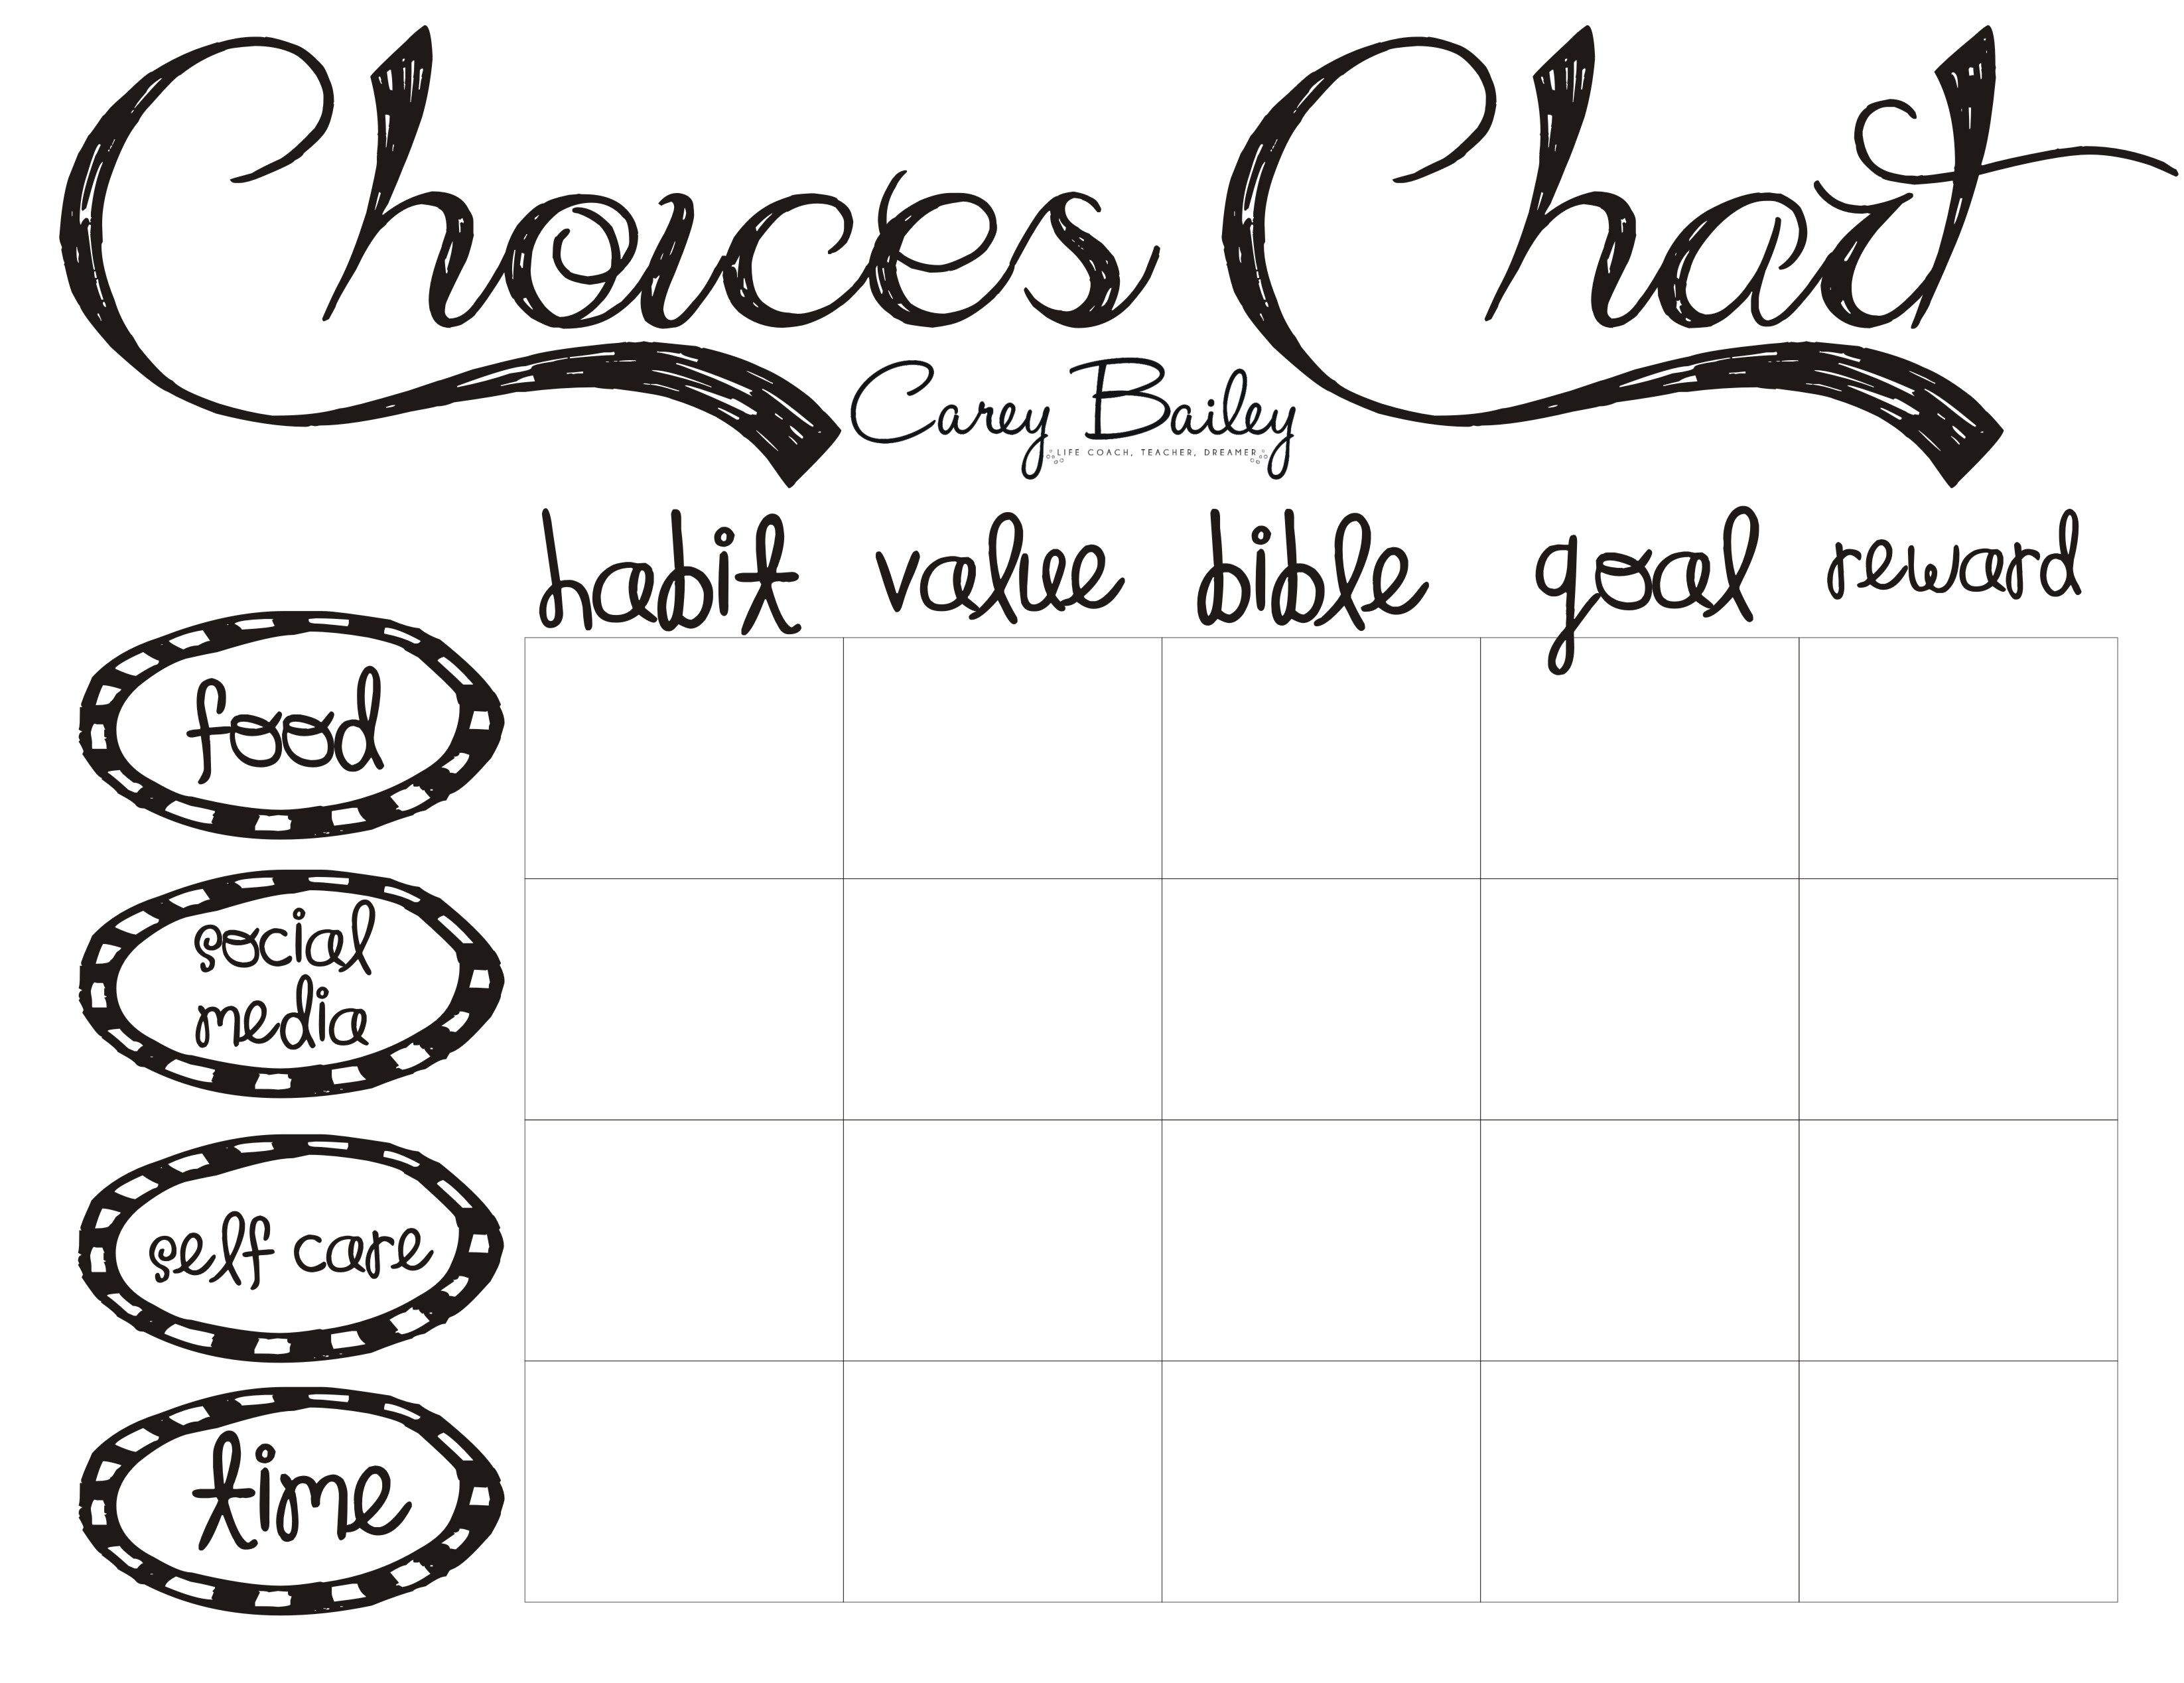 Simplifying Choices